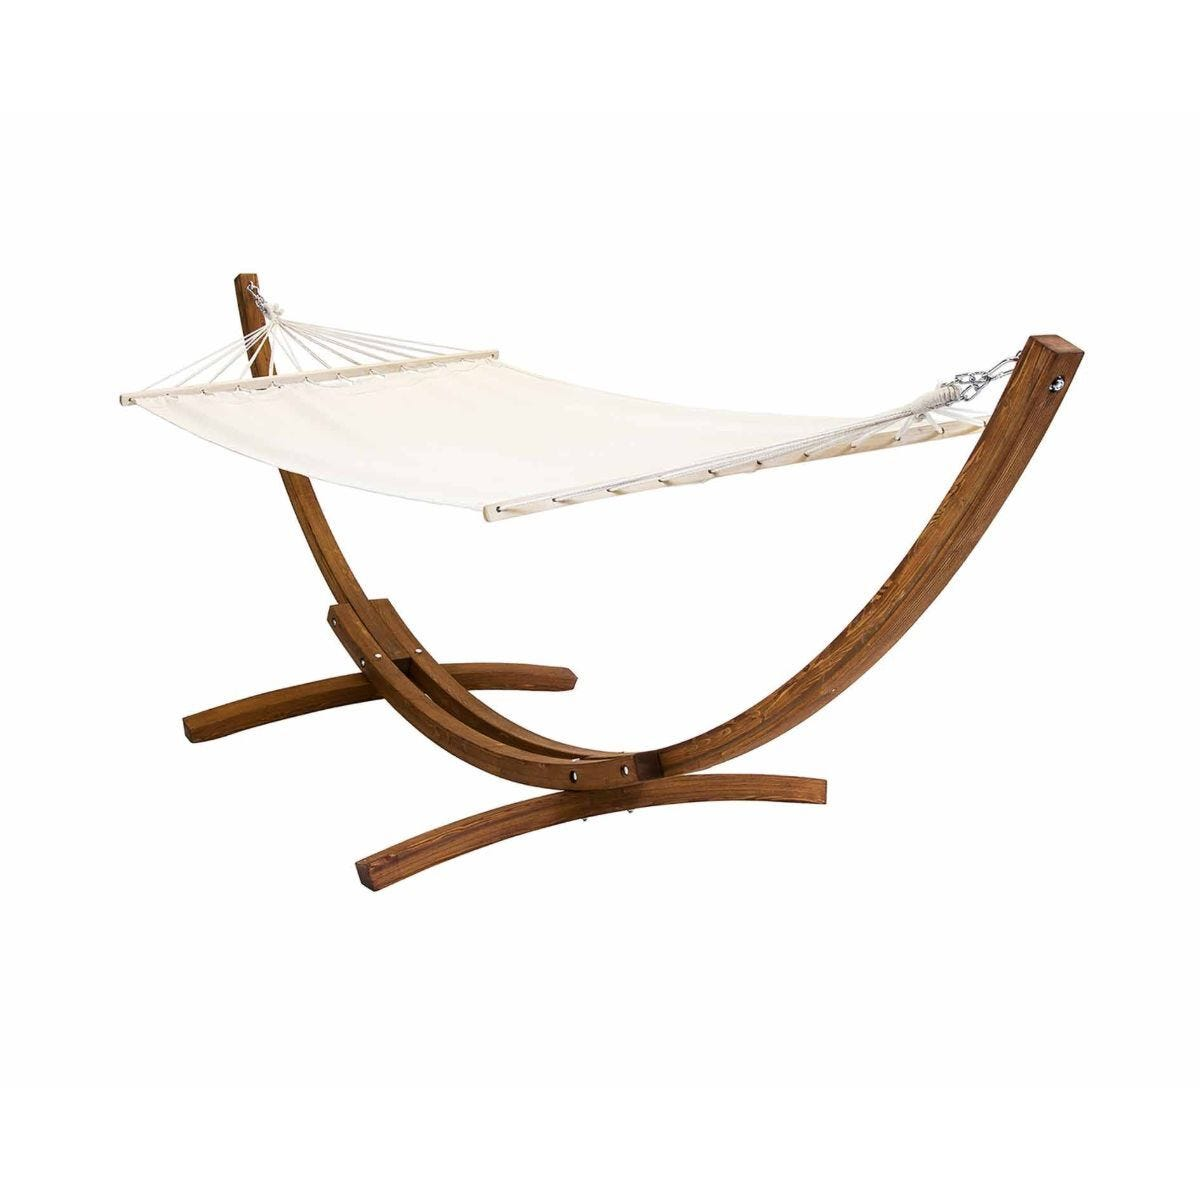 Charles Bentley Freestanding Hammock with Wooden Arc Stand